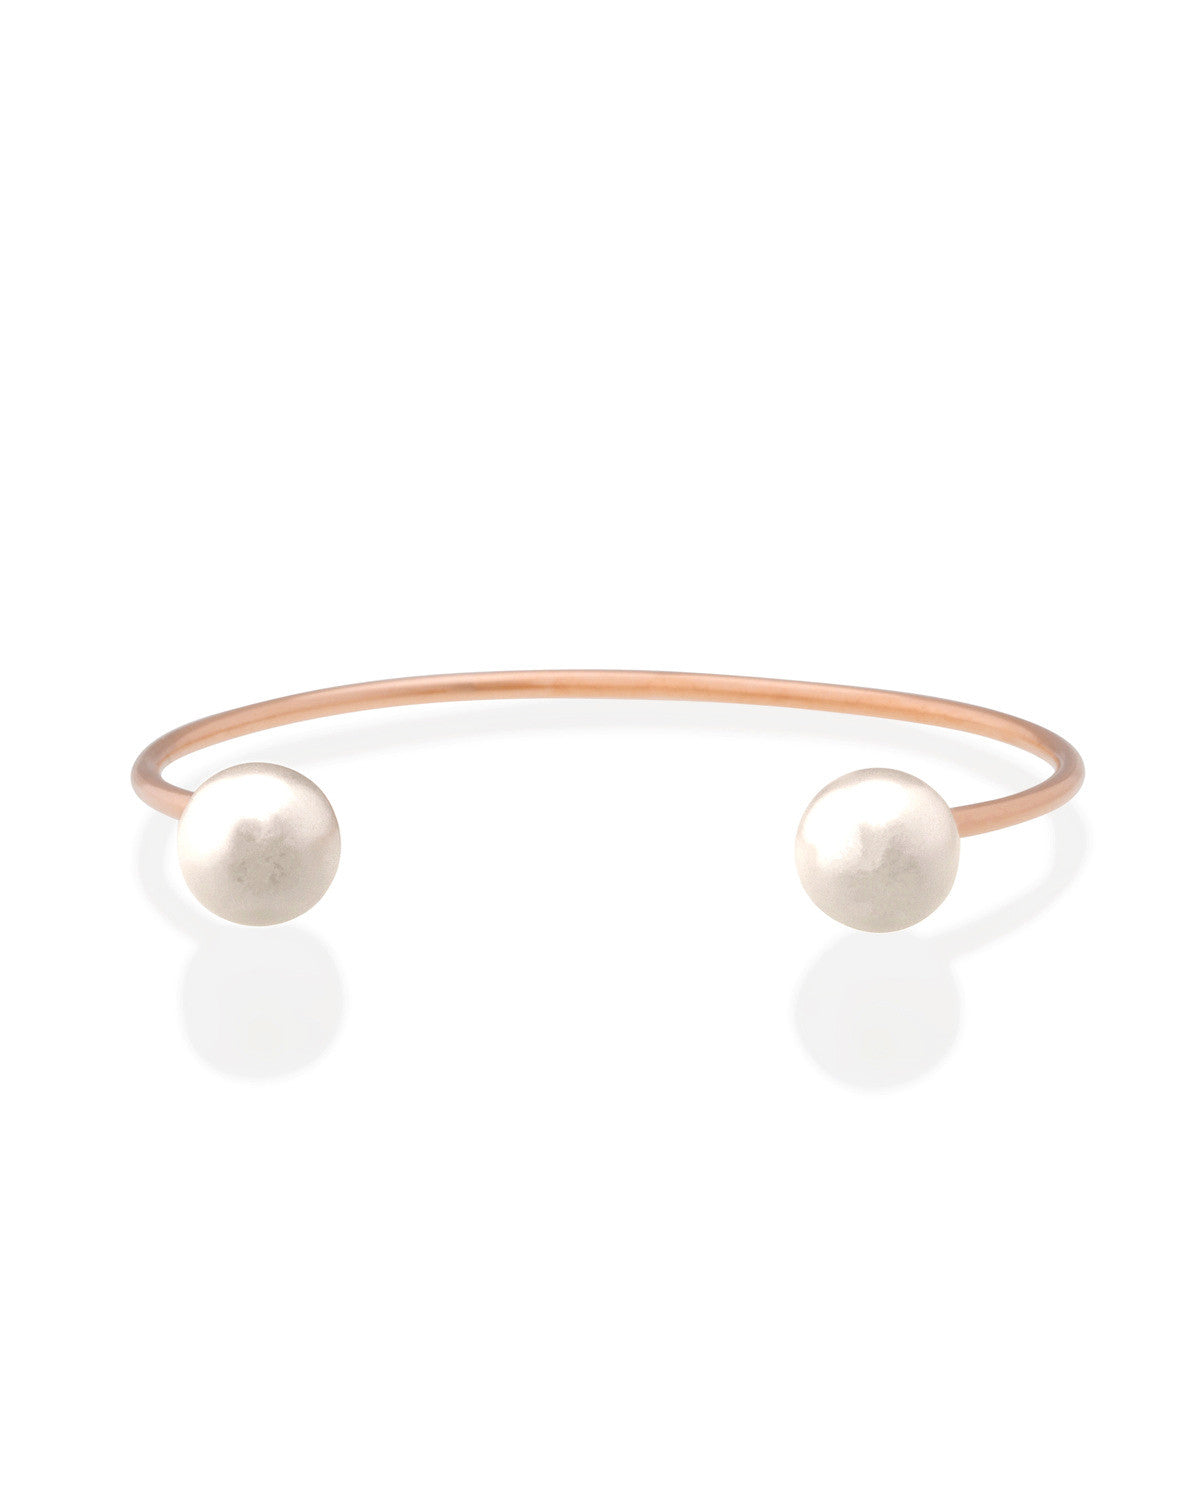 Lost Dream Pearl Cuff (Rose Gold)_Benique